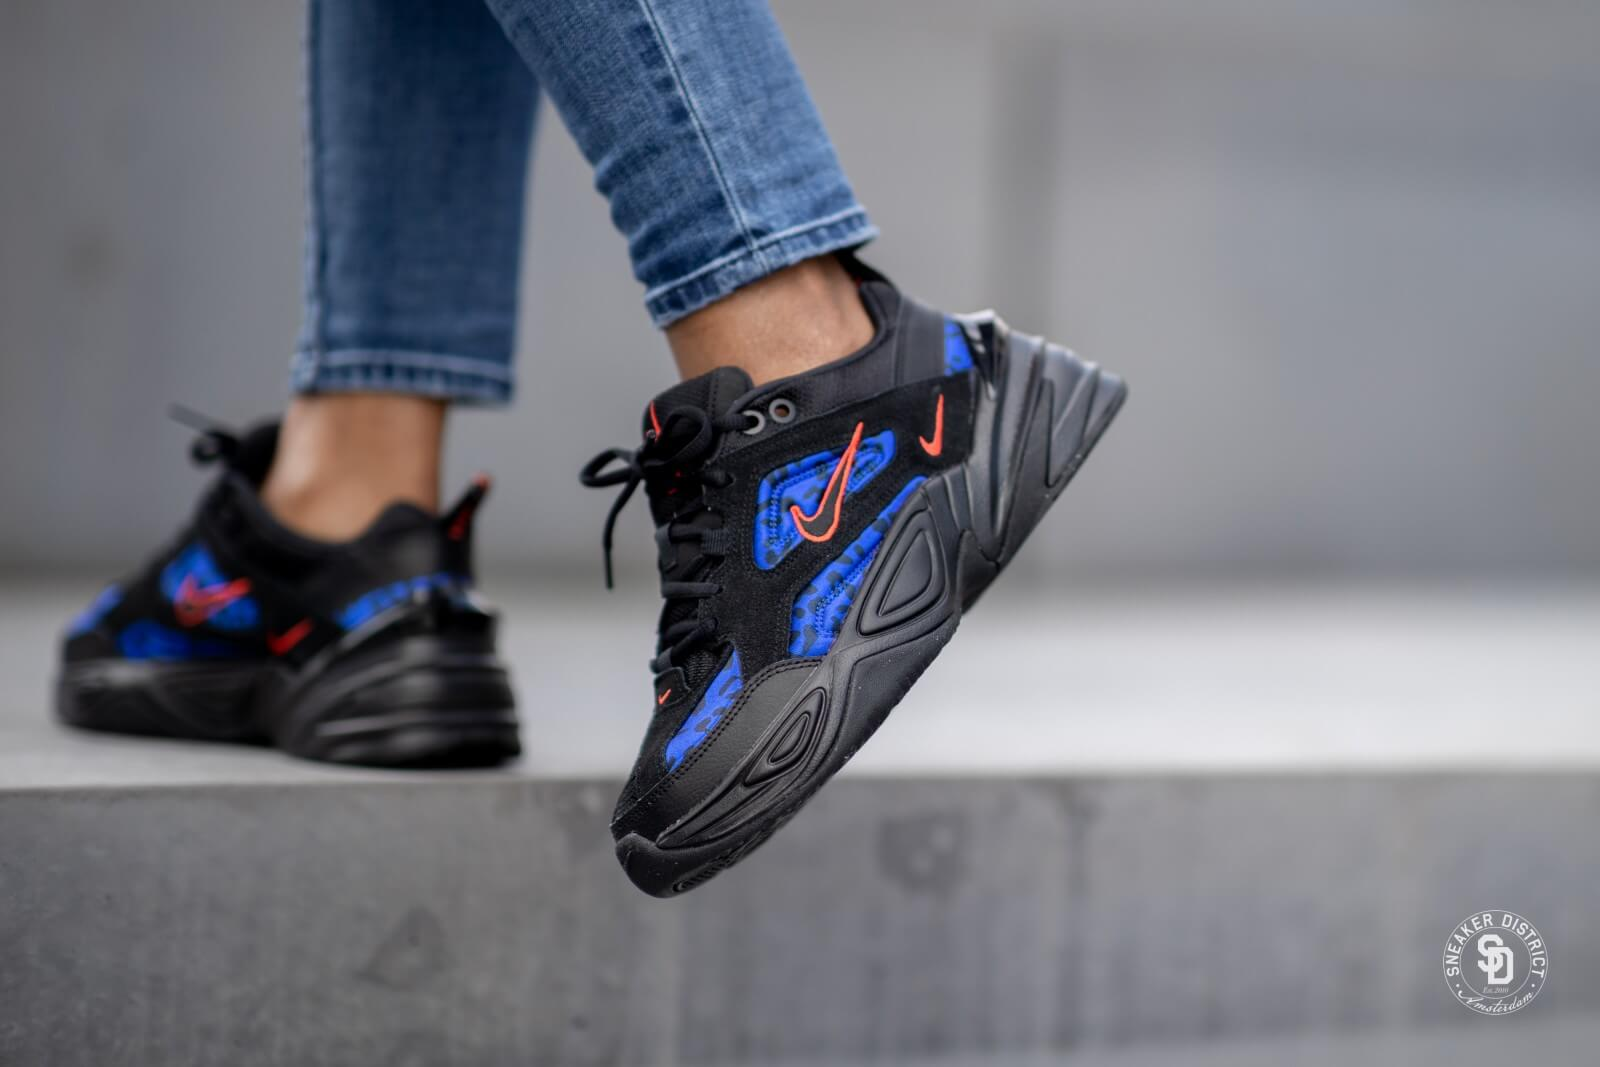 Variante Perth Blackborough gritar  Nike M2k Tekno Premium Black Leopard Habanero Red/Racer Blue - CD0181-001